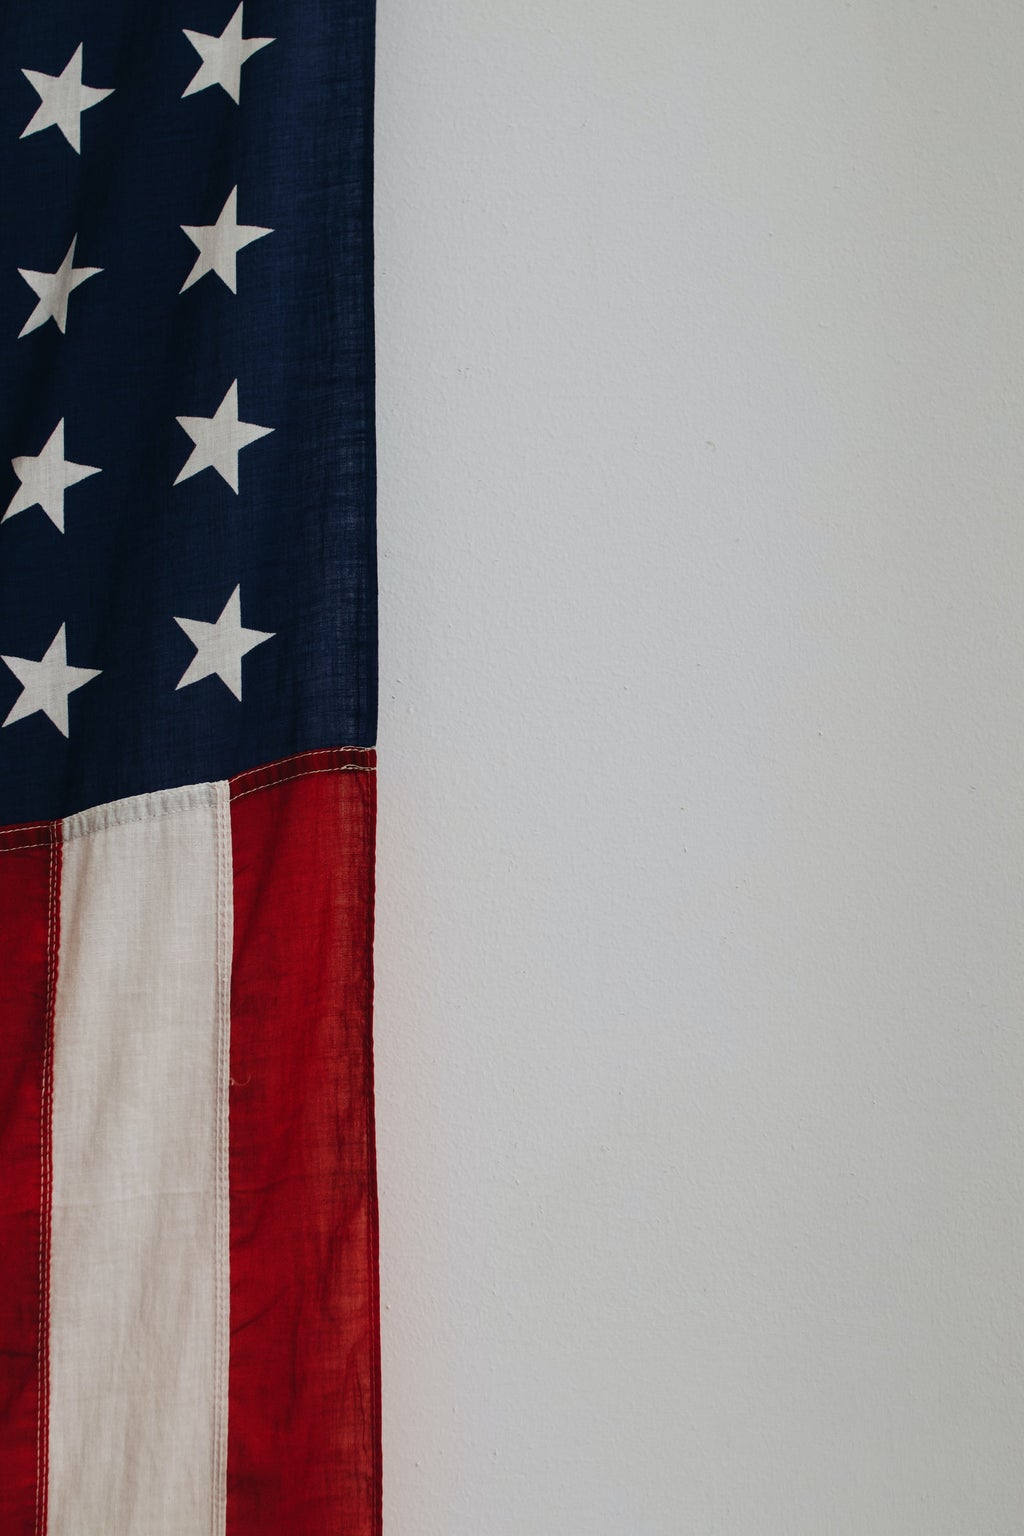 A portion of the American flag with a white background.